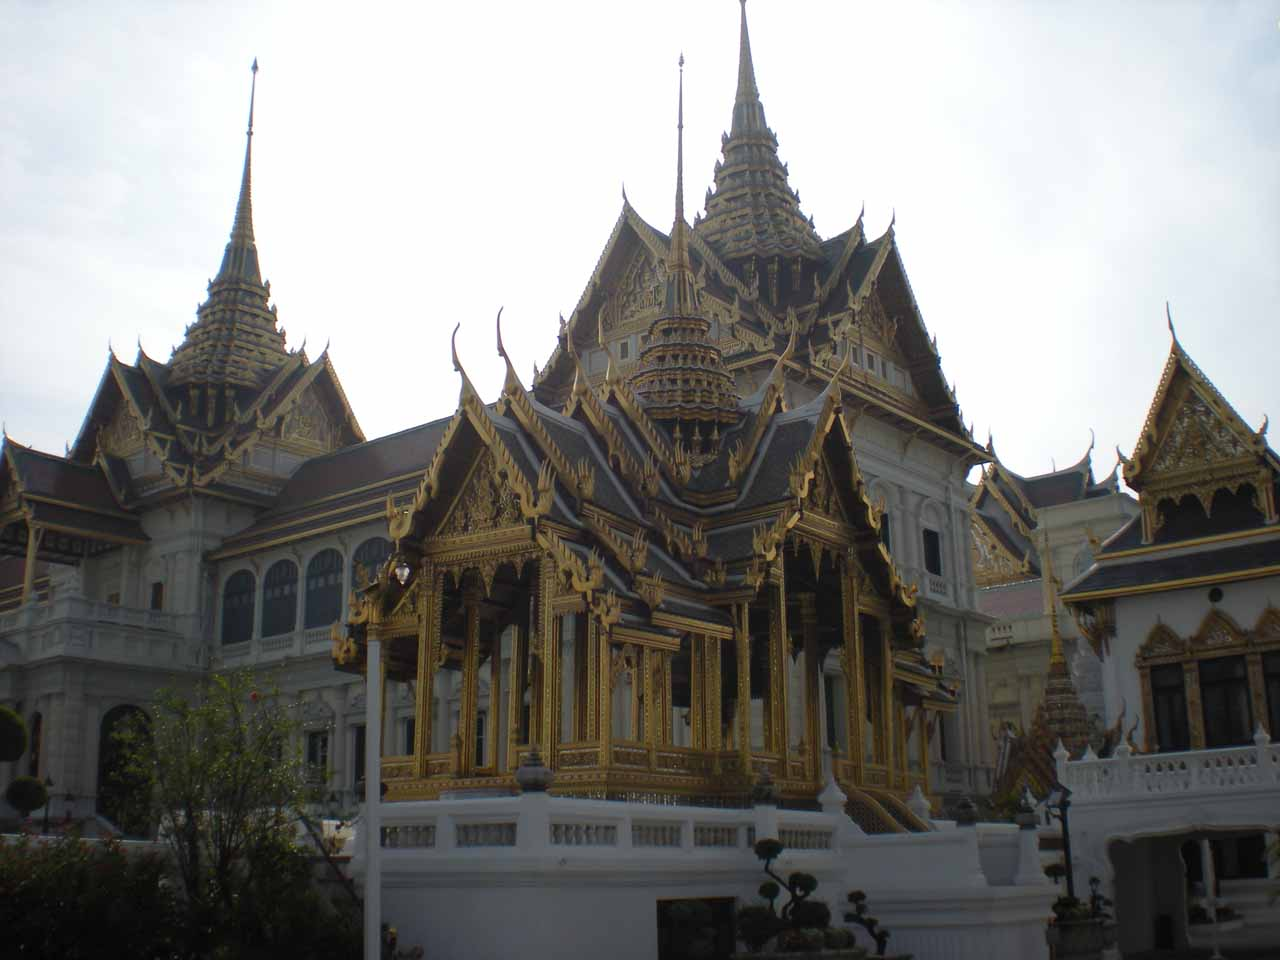 More fancy buildings within the Grand Palace Complex